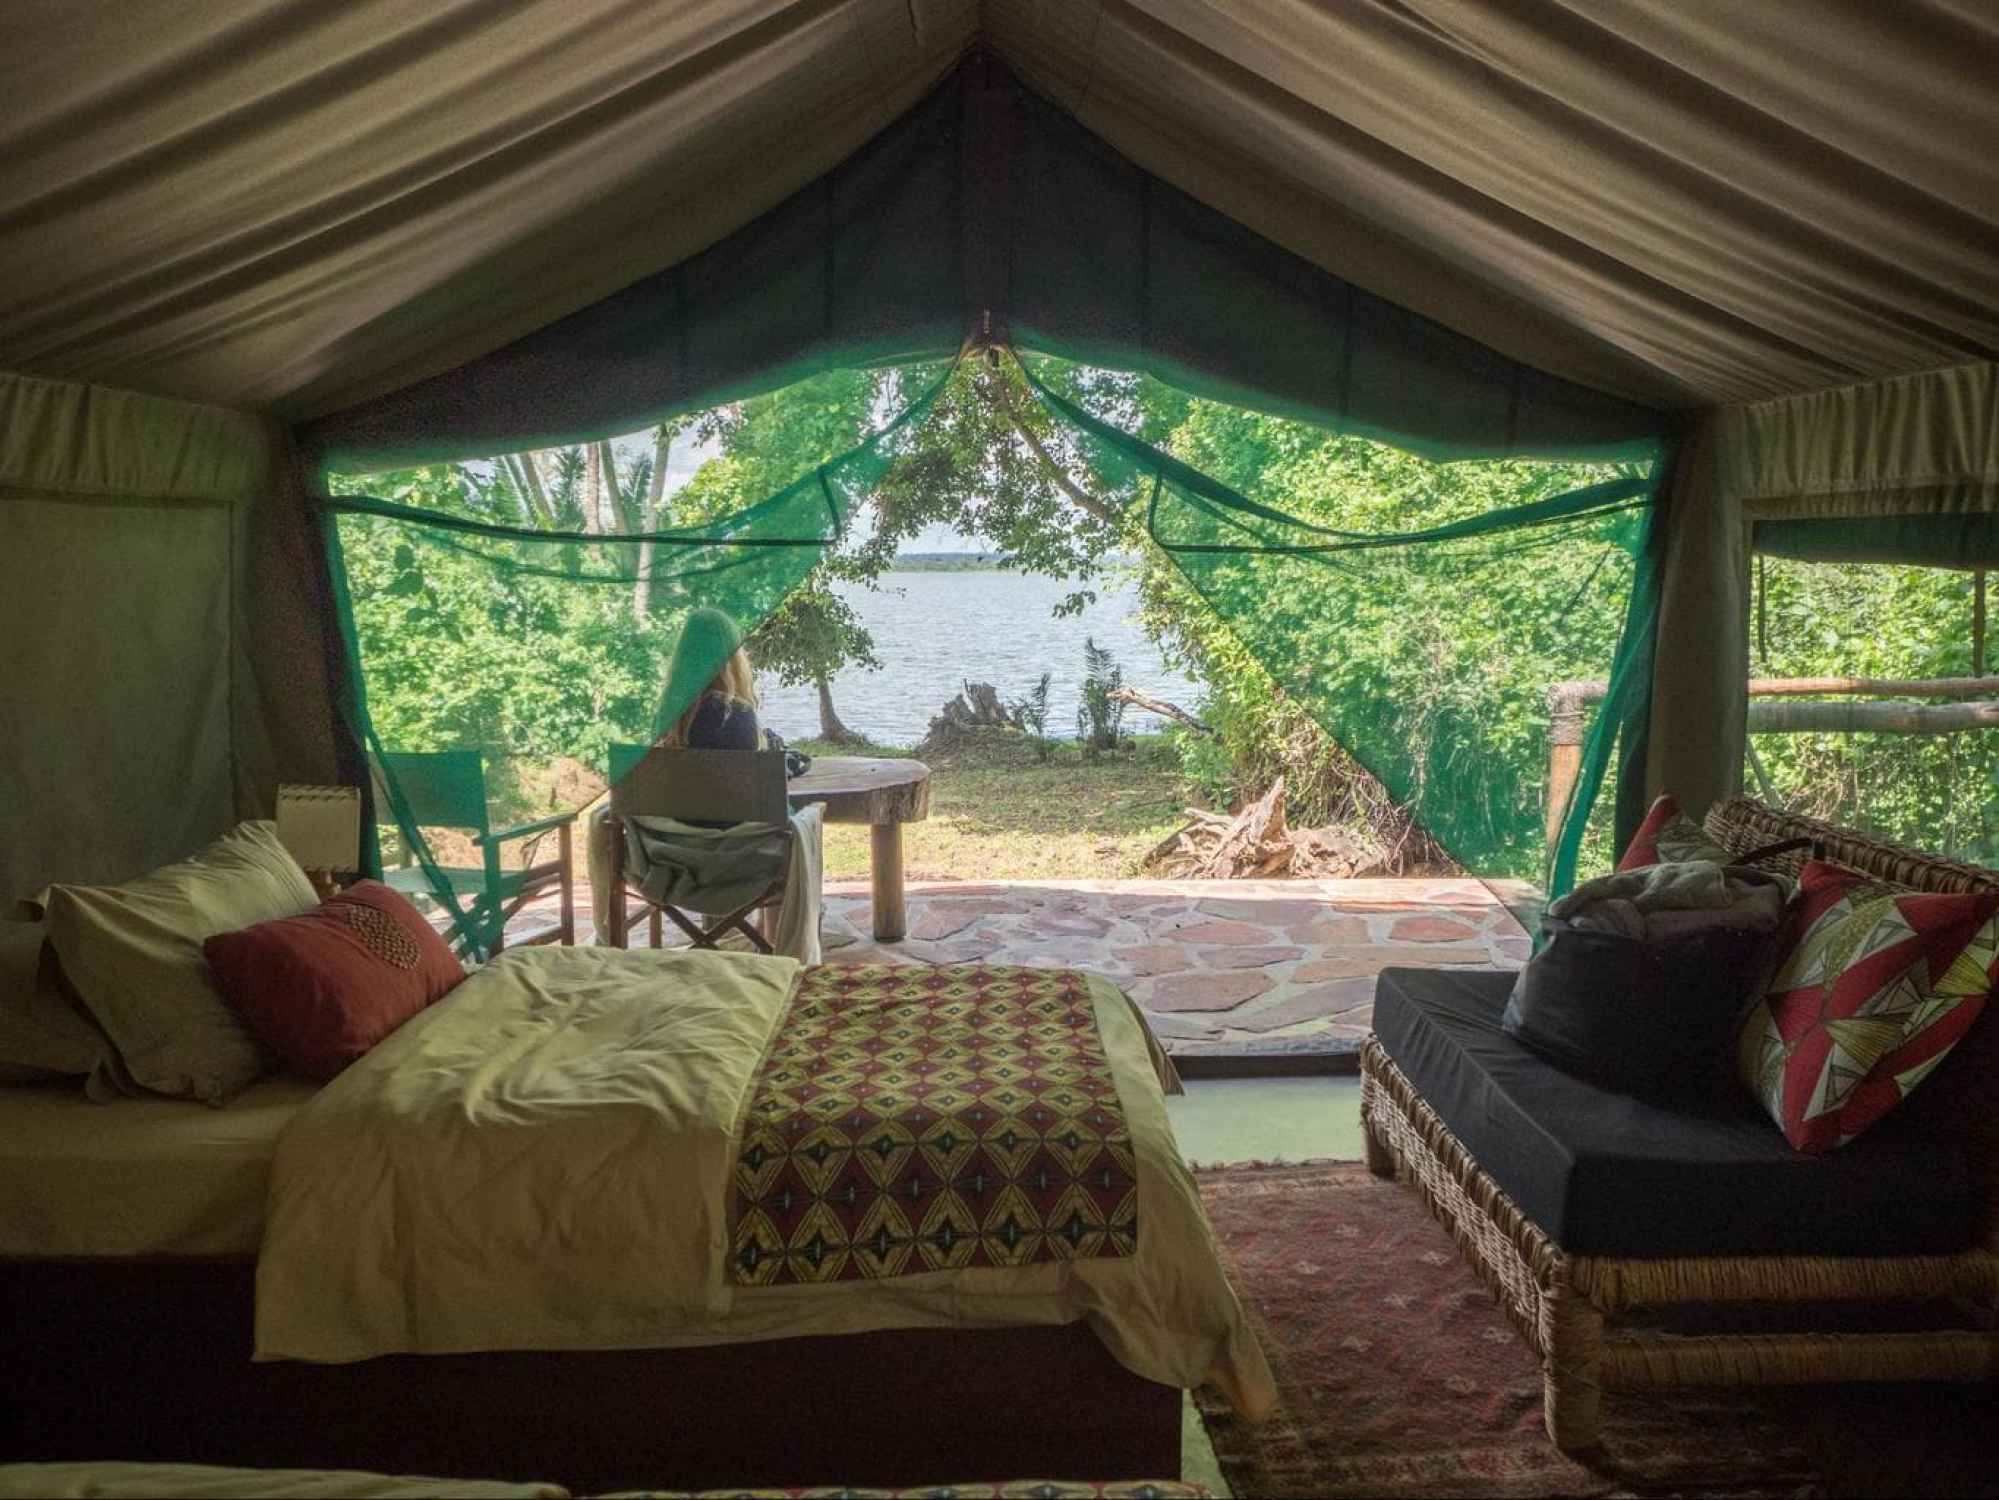 The tents at Ruzizi Tented Lodge